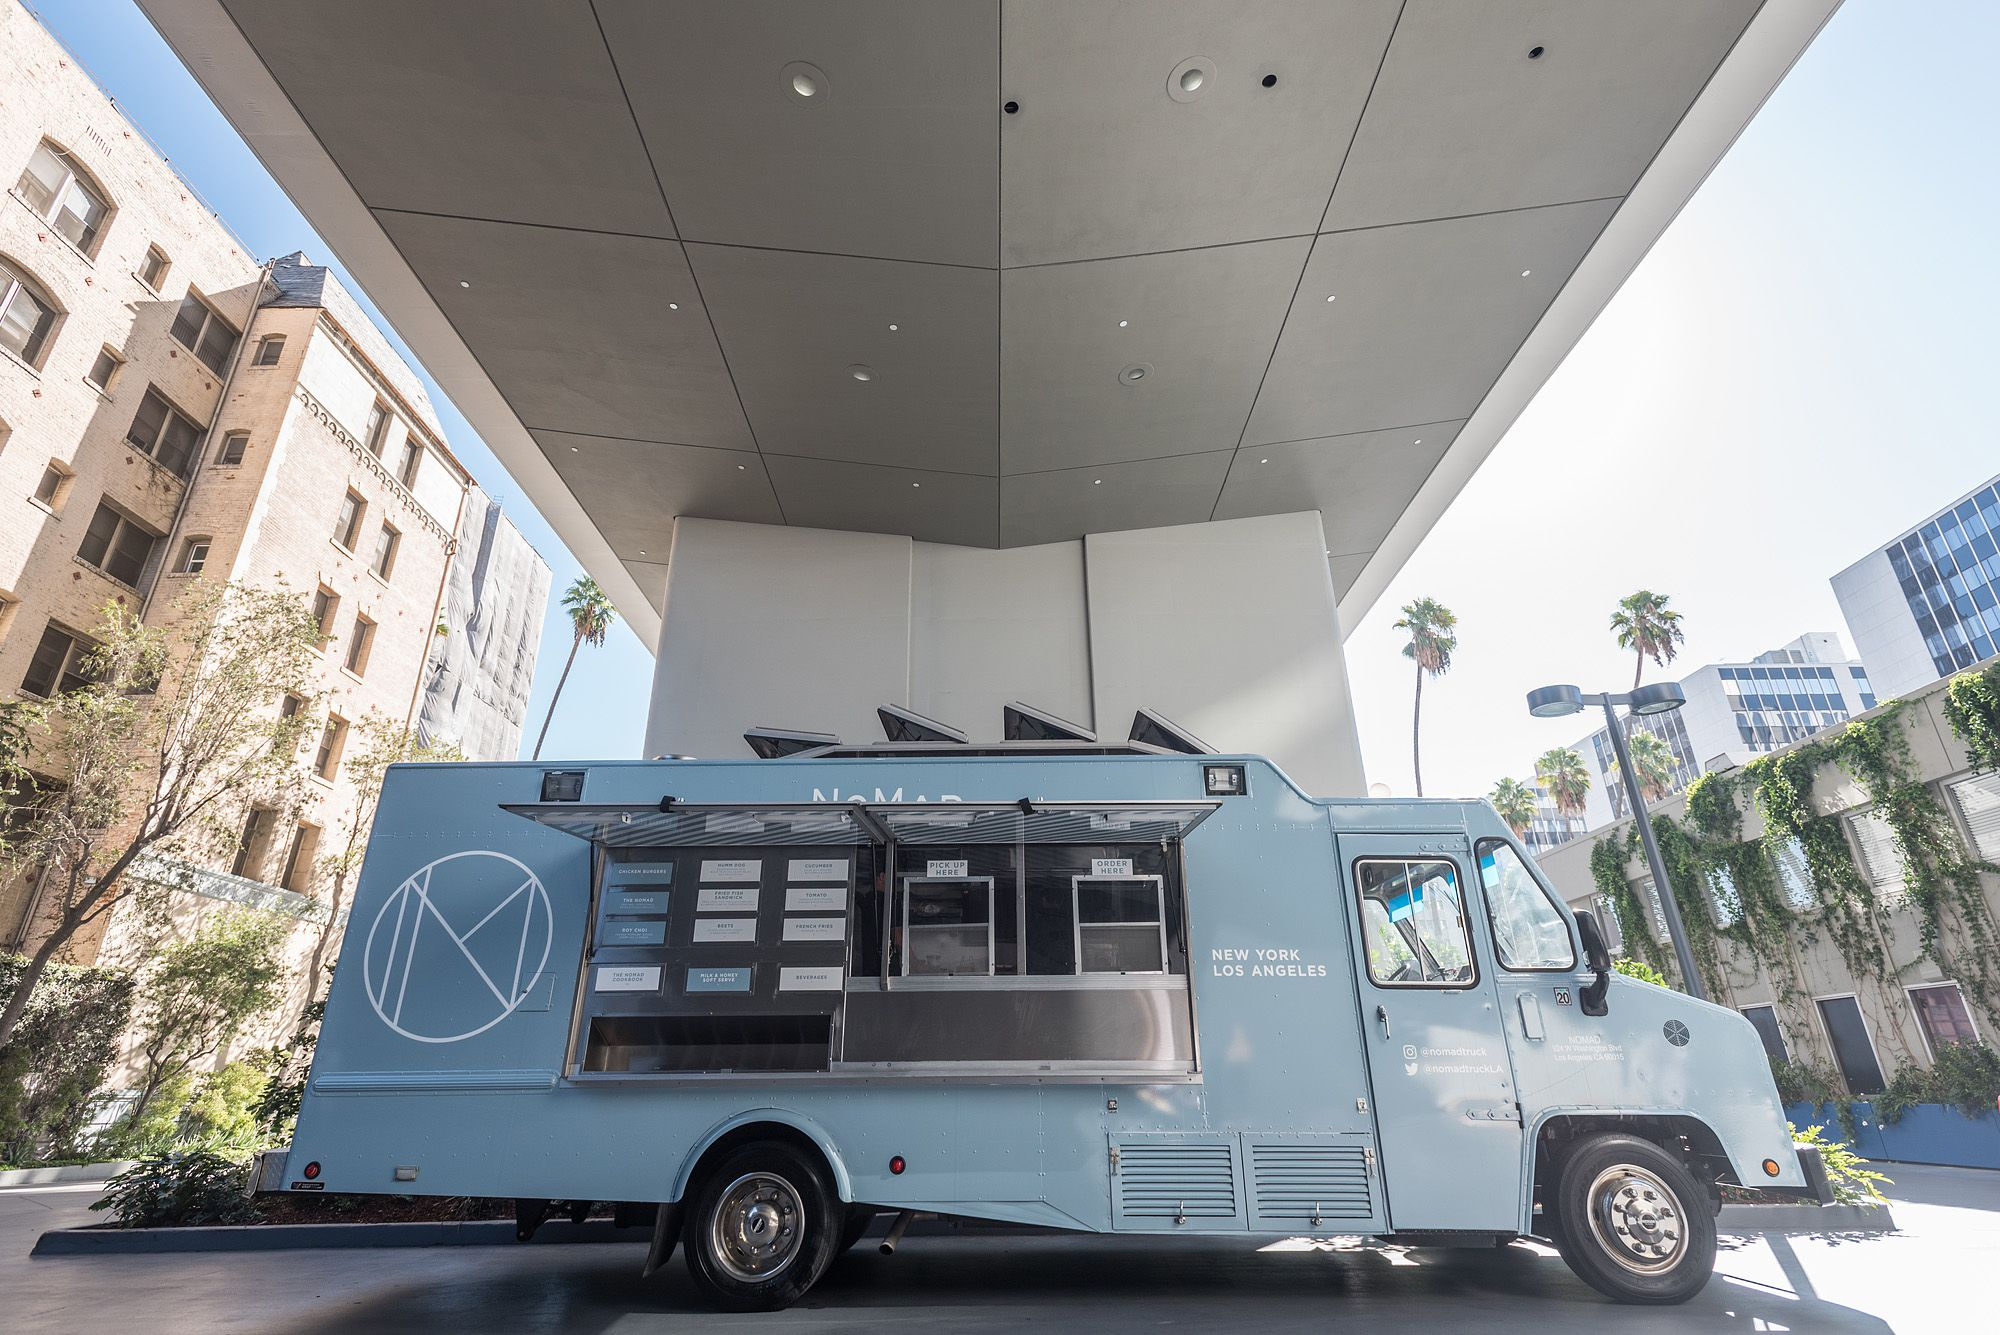 Nyc 39 s the nomad team rolls into la with new food truck for Nomad service